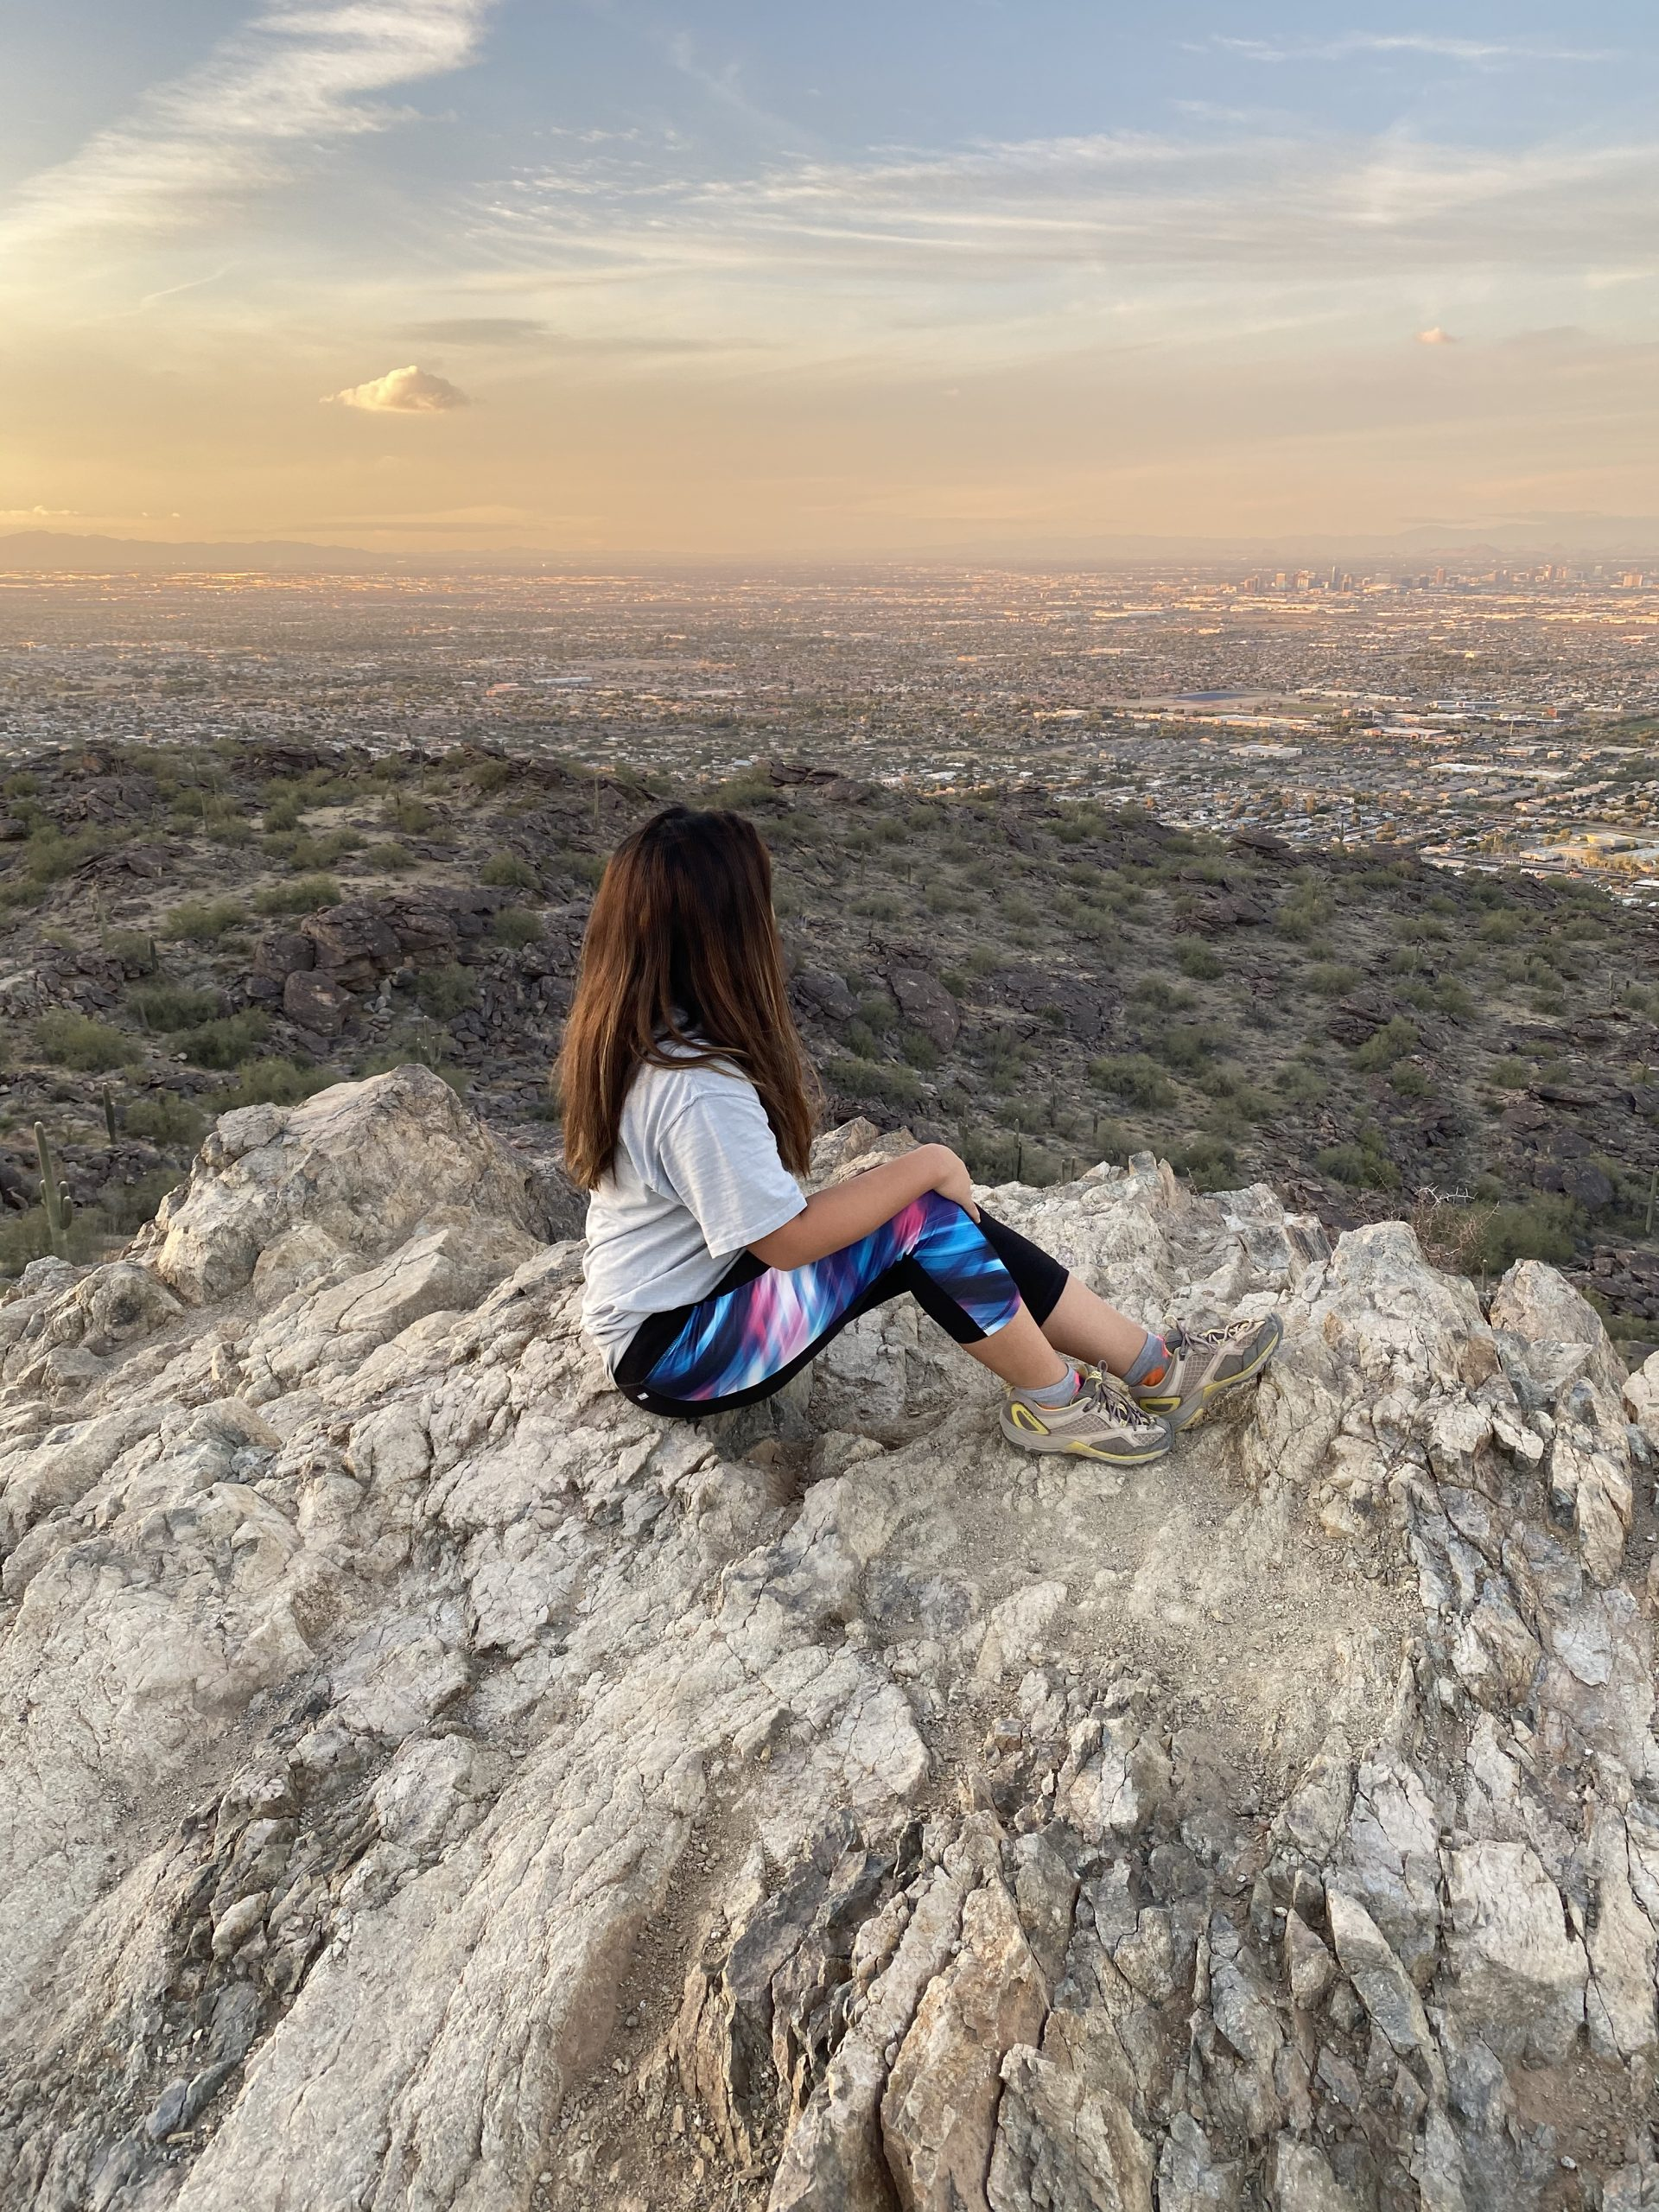 Hiking the Hidden Valley Trail on South Mountain in Phoenix, Arizona